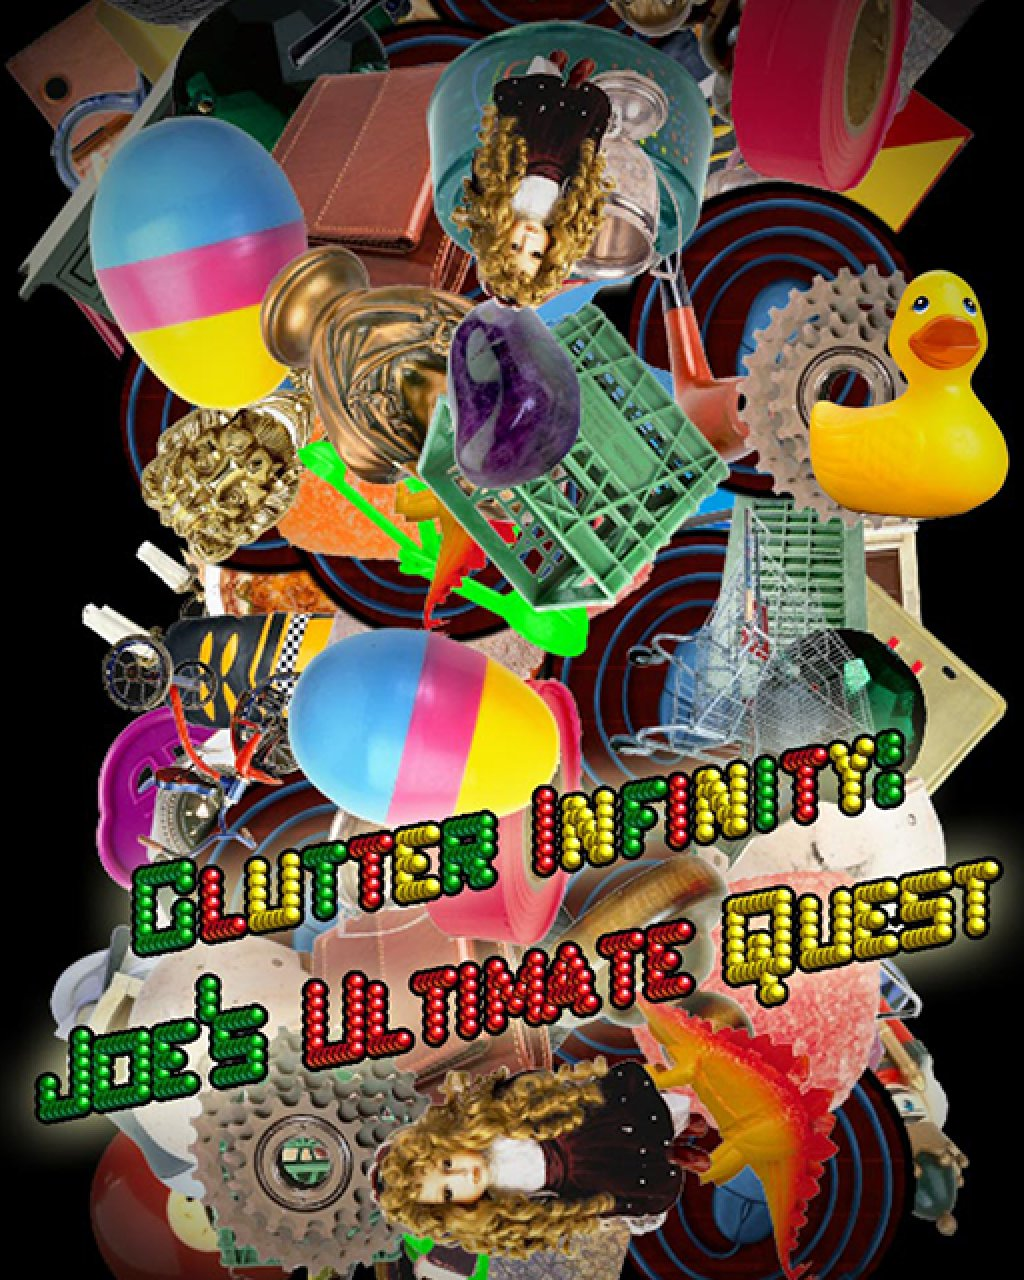 Clutter 7: Infinity Joes Ultimate Quest